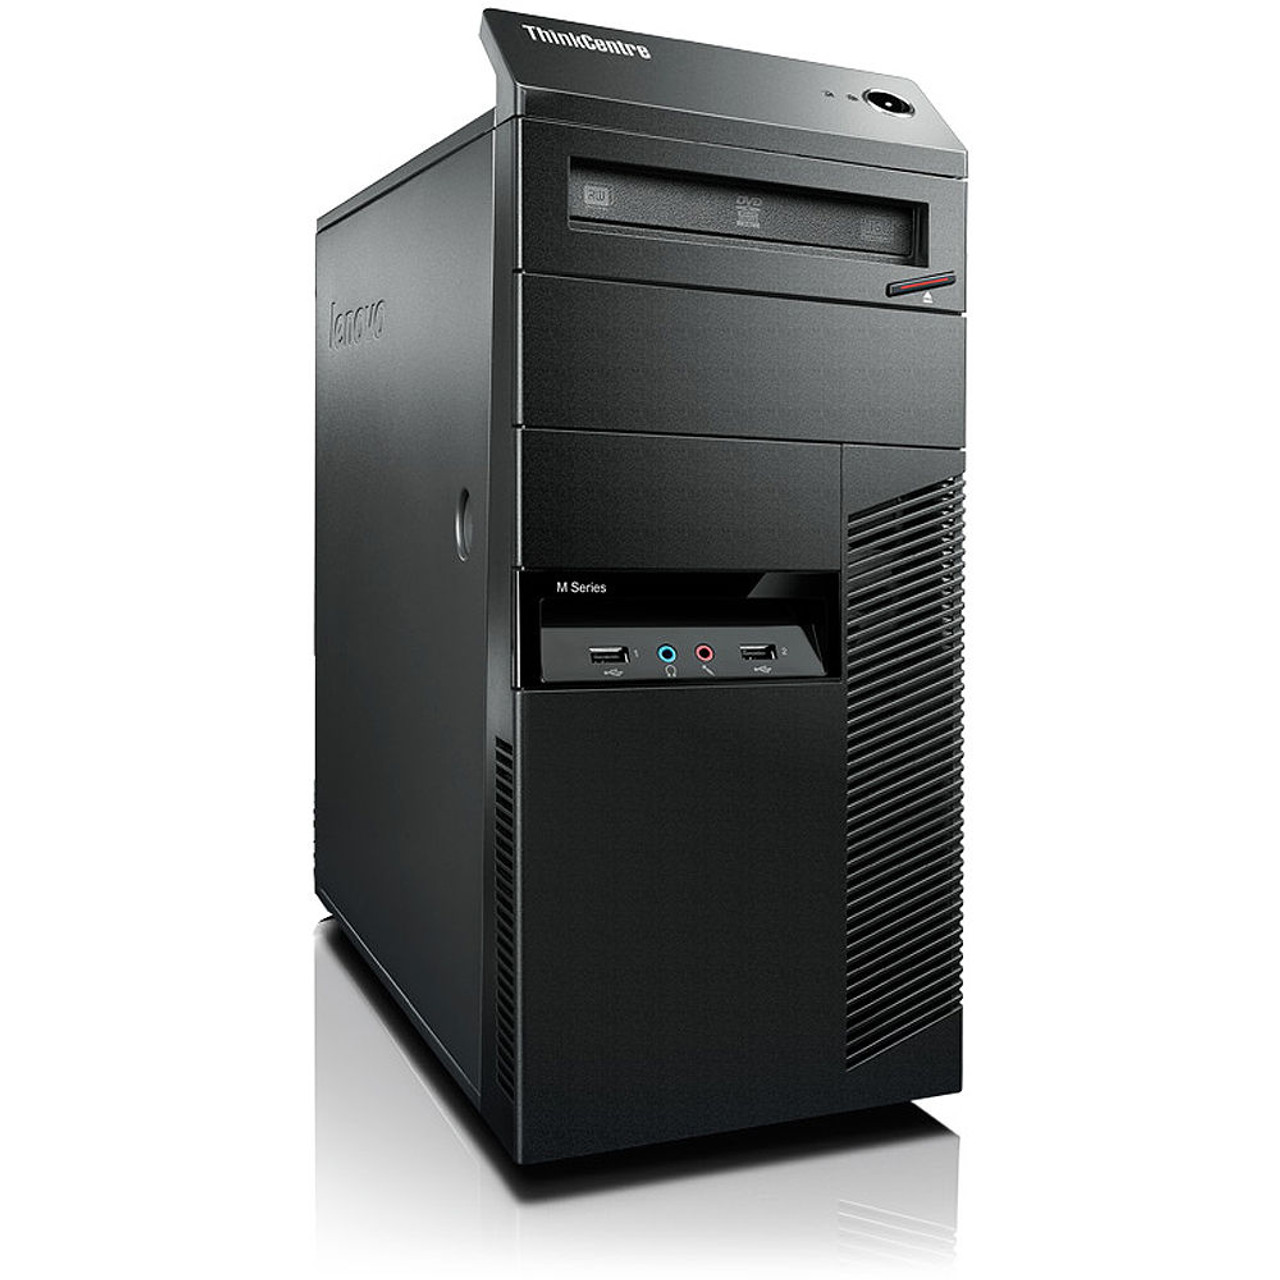 IBM Lenovo ThinkCentre M92p Tower i5 Quad Core 3.2GHz, 8GB Ram, 500GB HDD, DVD-RW  Desktop Computer Windows 10 Pro 64